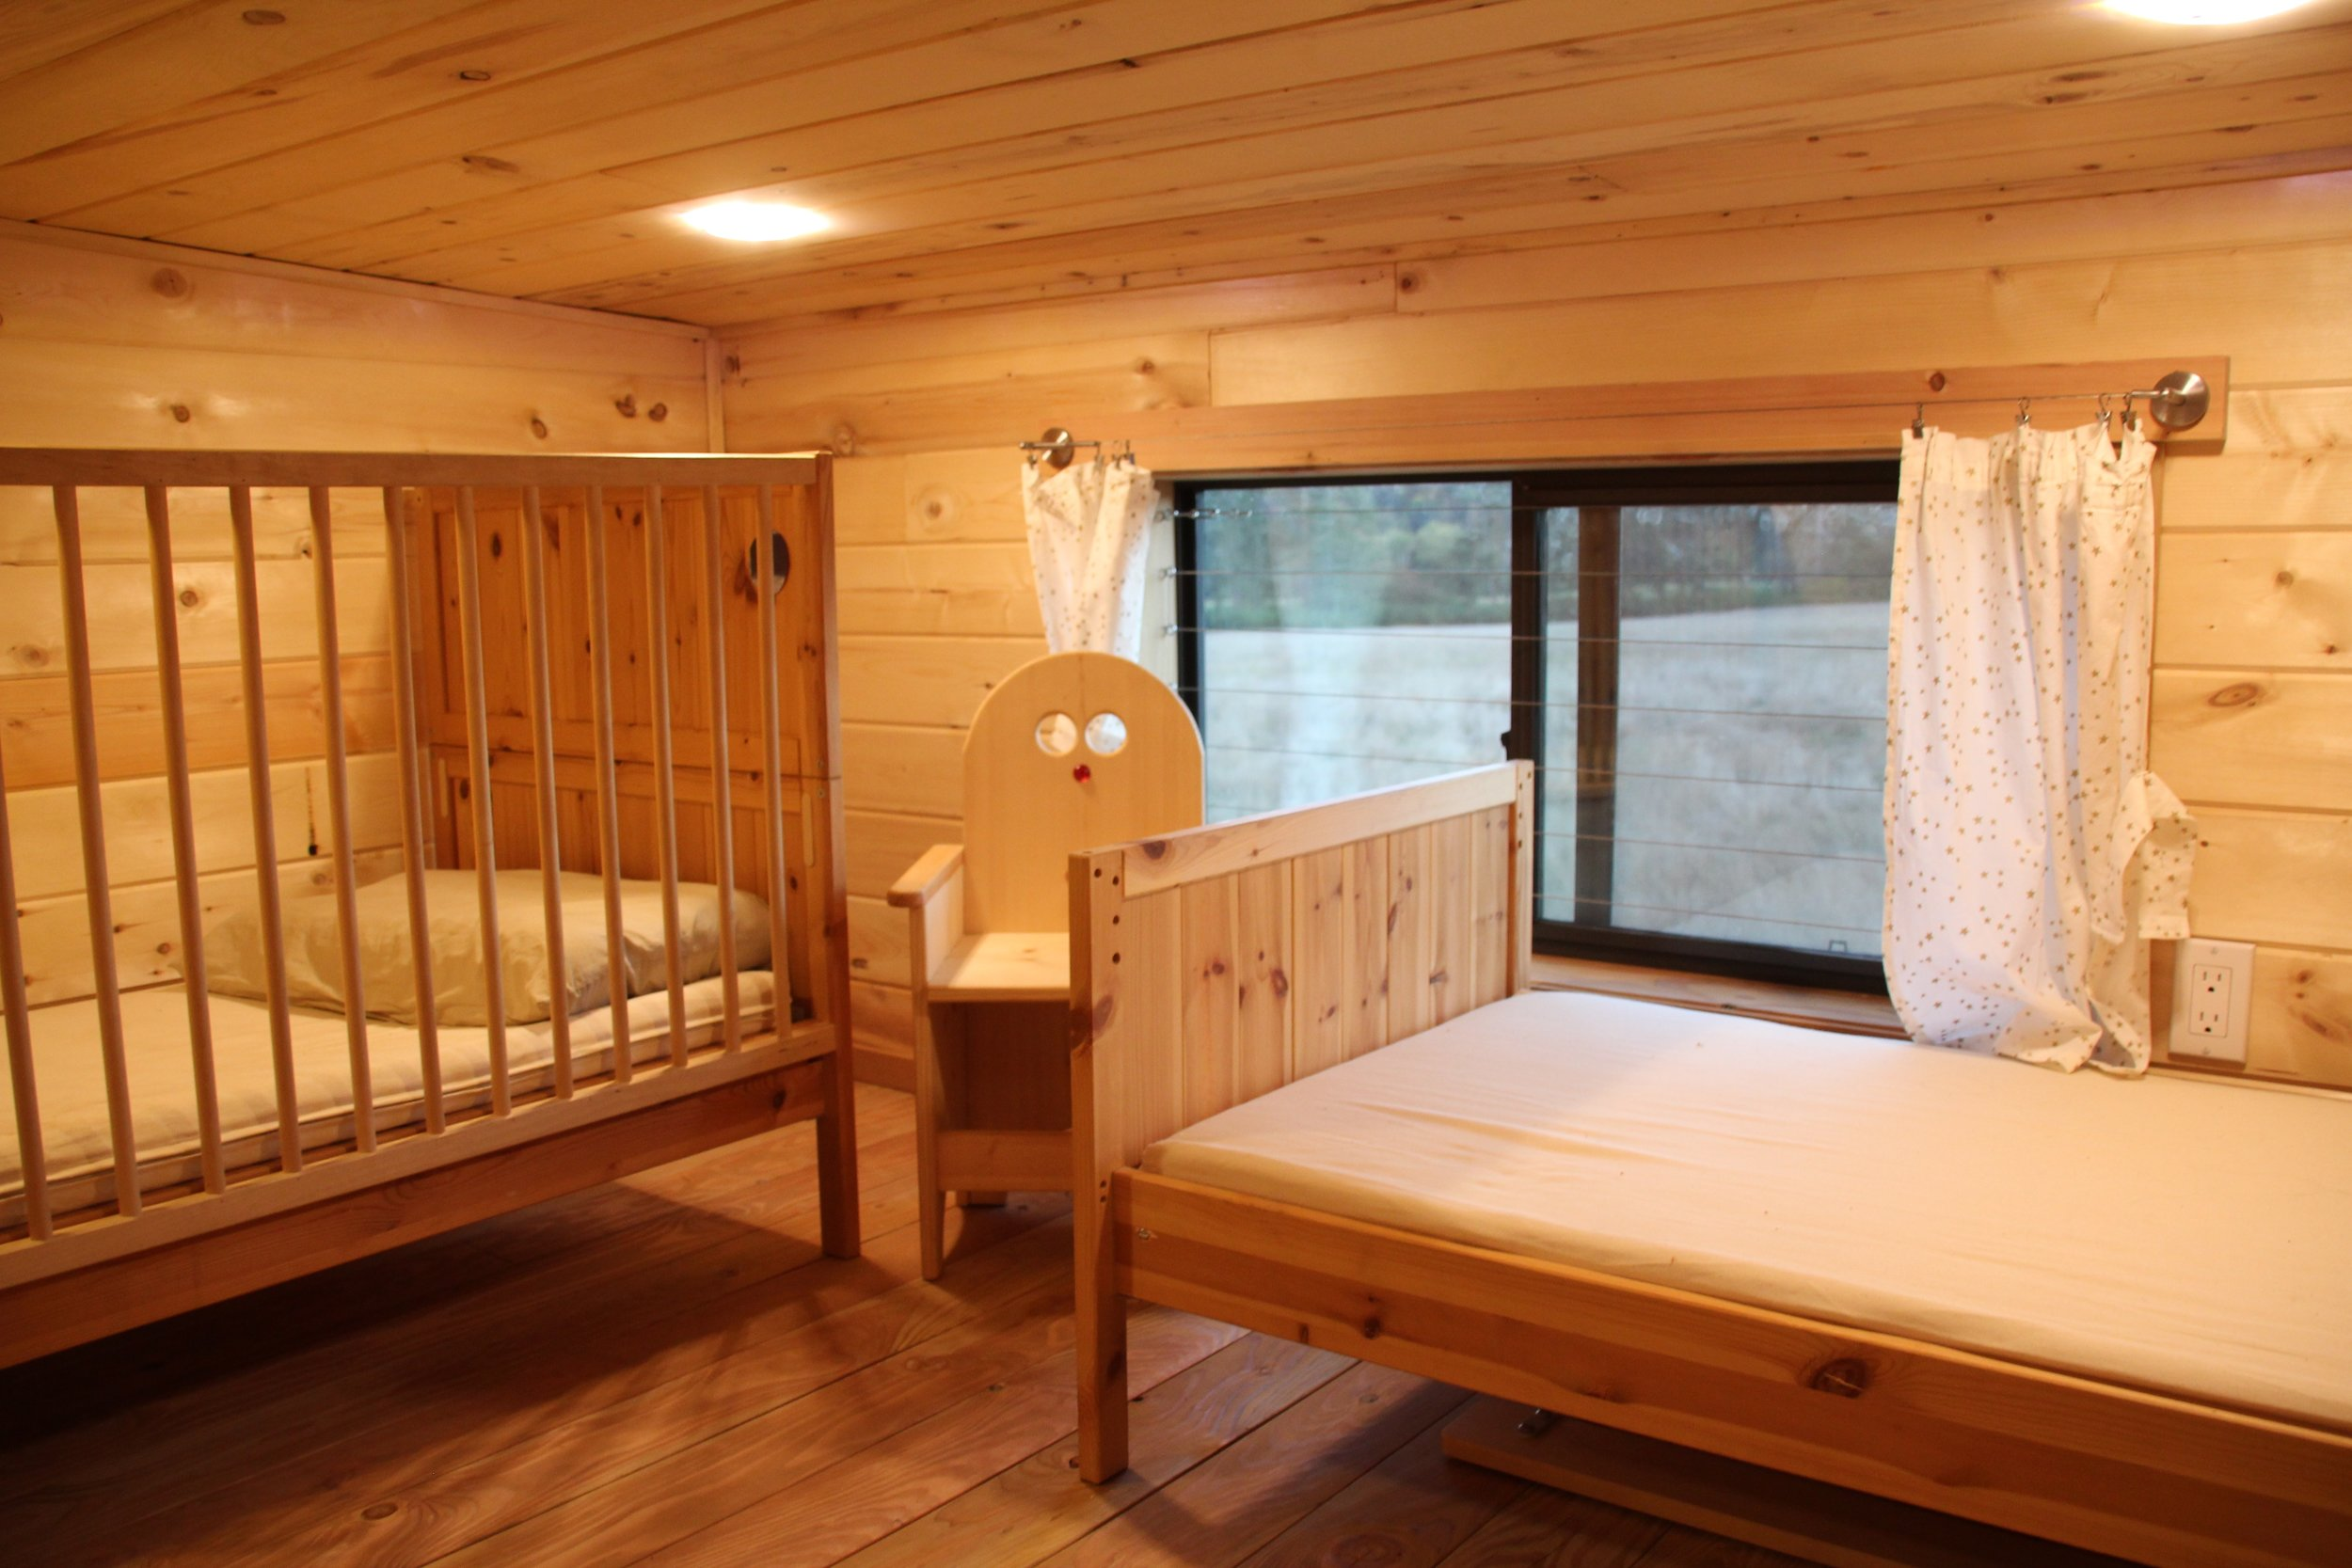 The childrens' room is one of the two bedrooms, both upstairs.